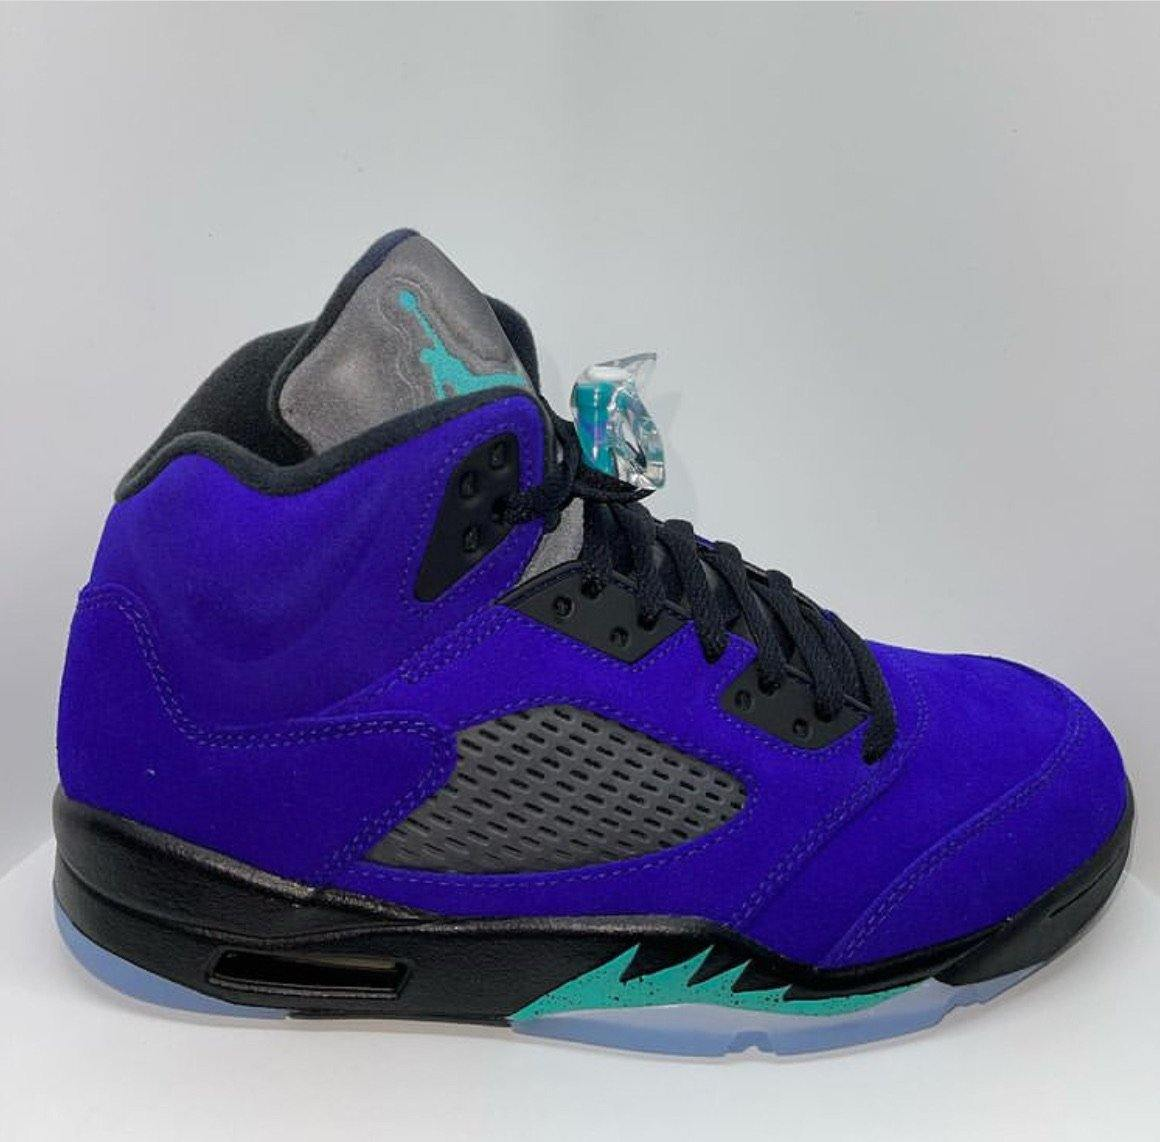 Air Jordan Retro 5s reverse Grape - Exclusive Shoes